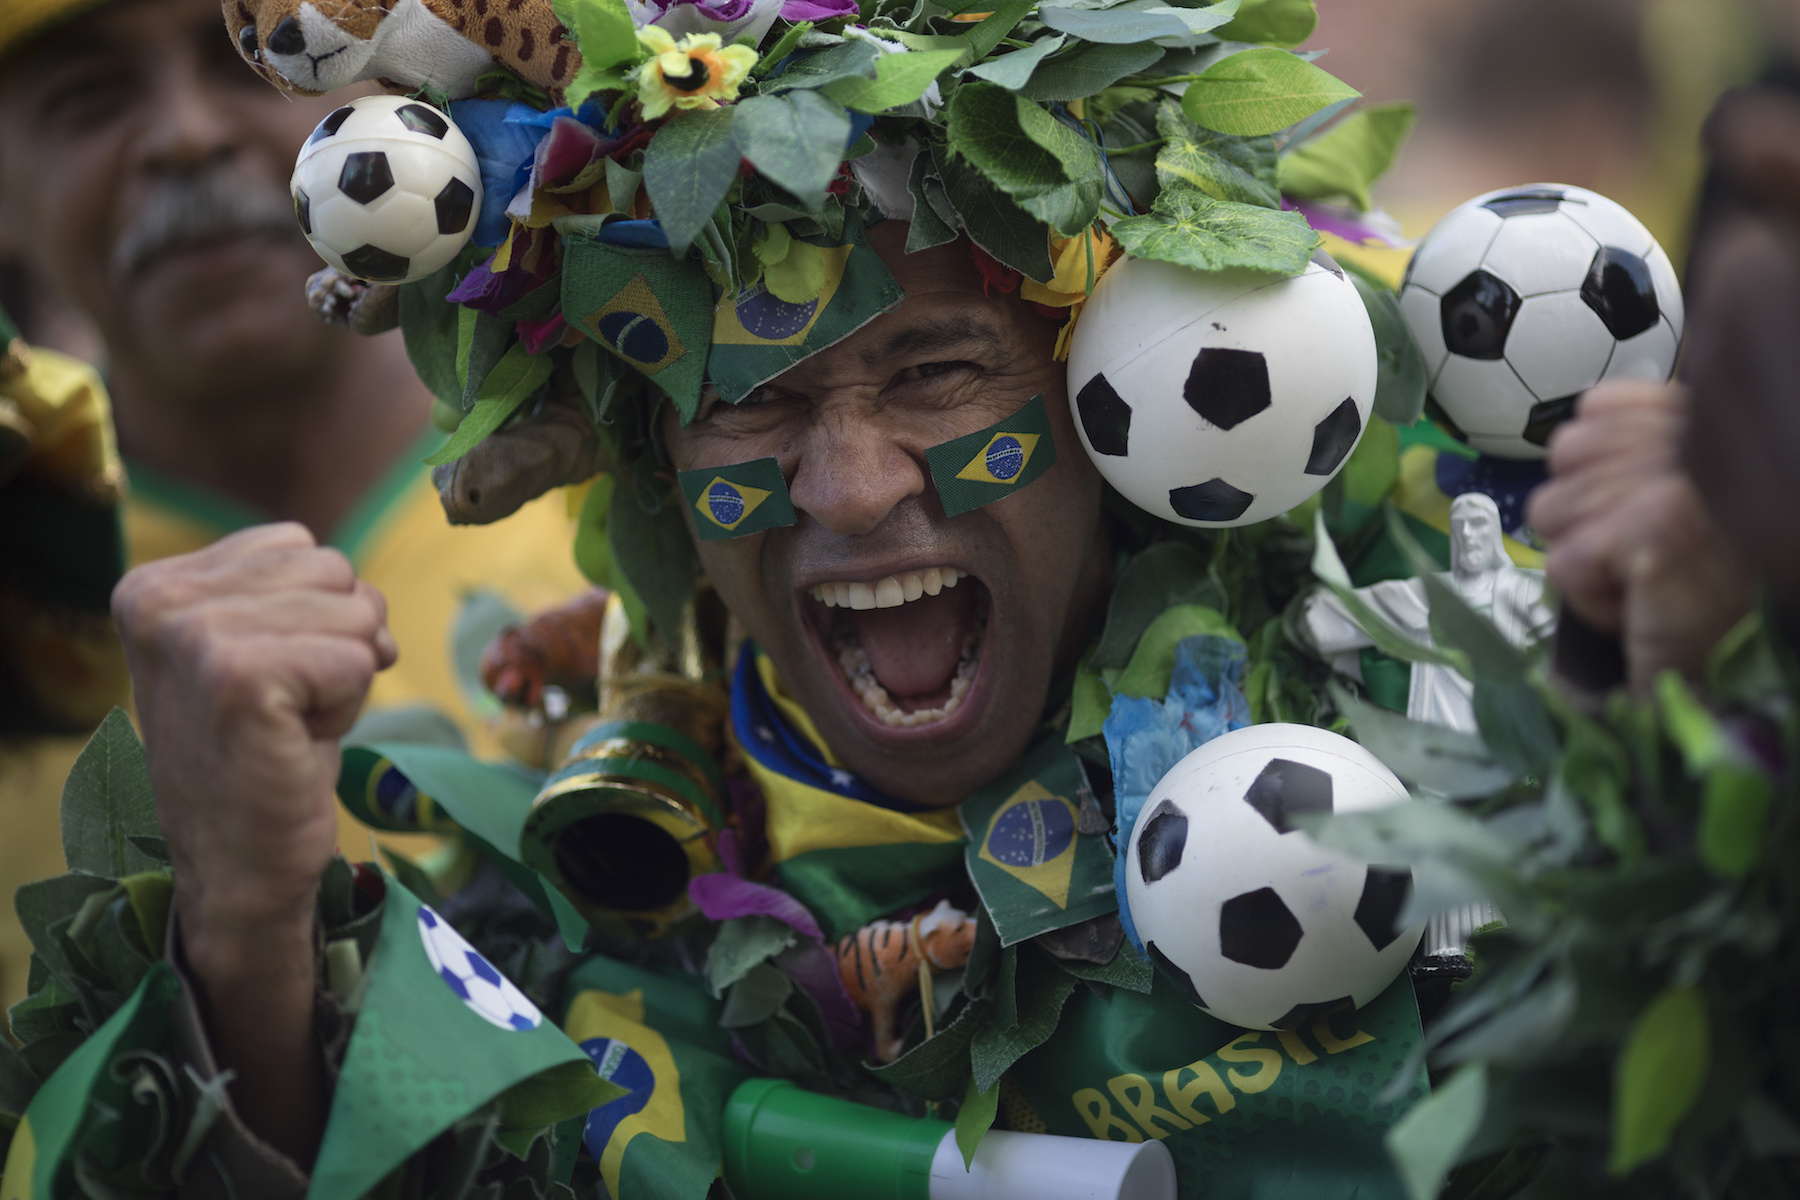 <div class='meta'><div class='origin-logo' data-origin='AP'></div><span class='caption-text' data-credit='AP Photo/Leo Correa'>A Brazil soccer fan, in a costume, poses to the camera as he cheers before his team's World Cup match against Switzerland in Rio de Janeiro, Brazil, Sunday, June 17, 2018.</span></div>